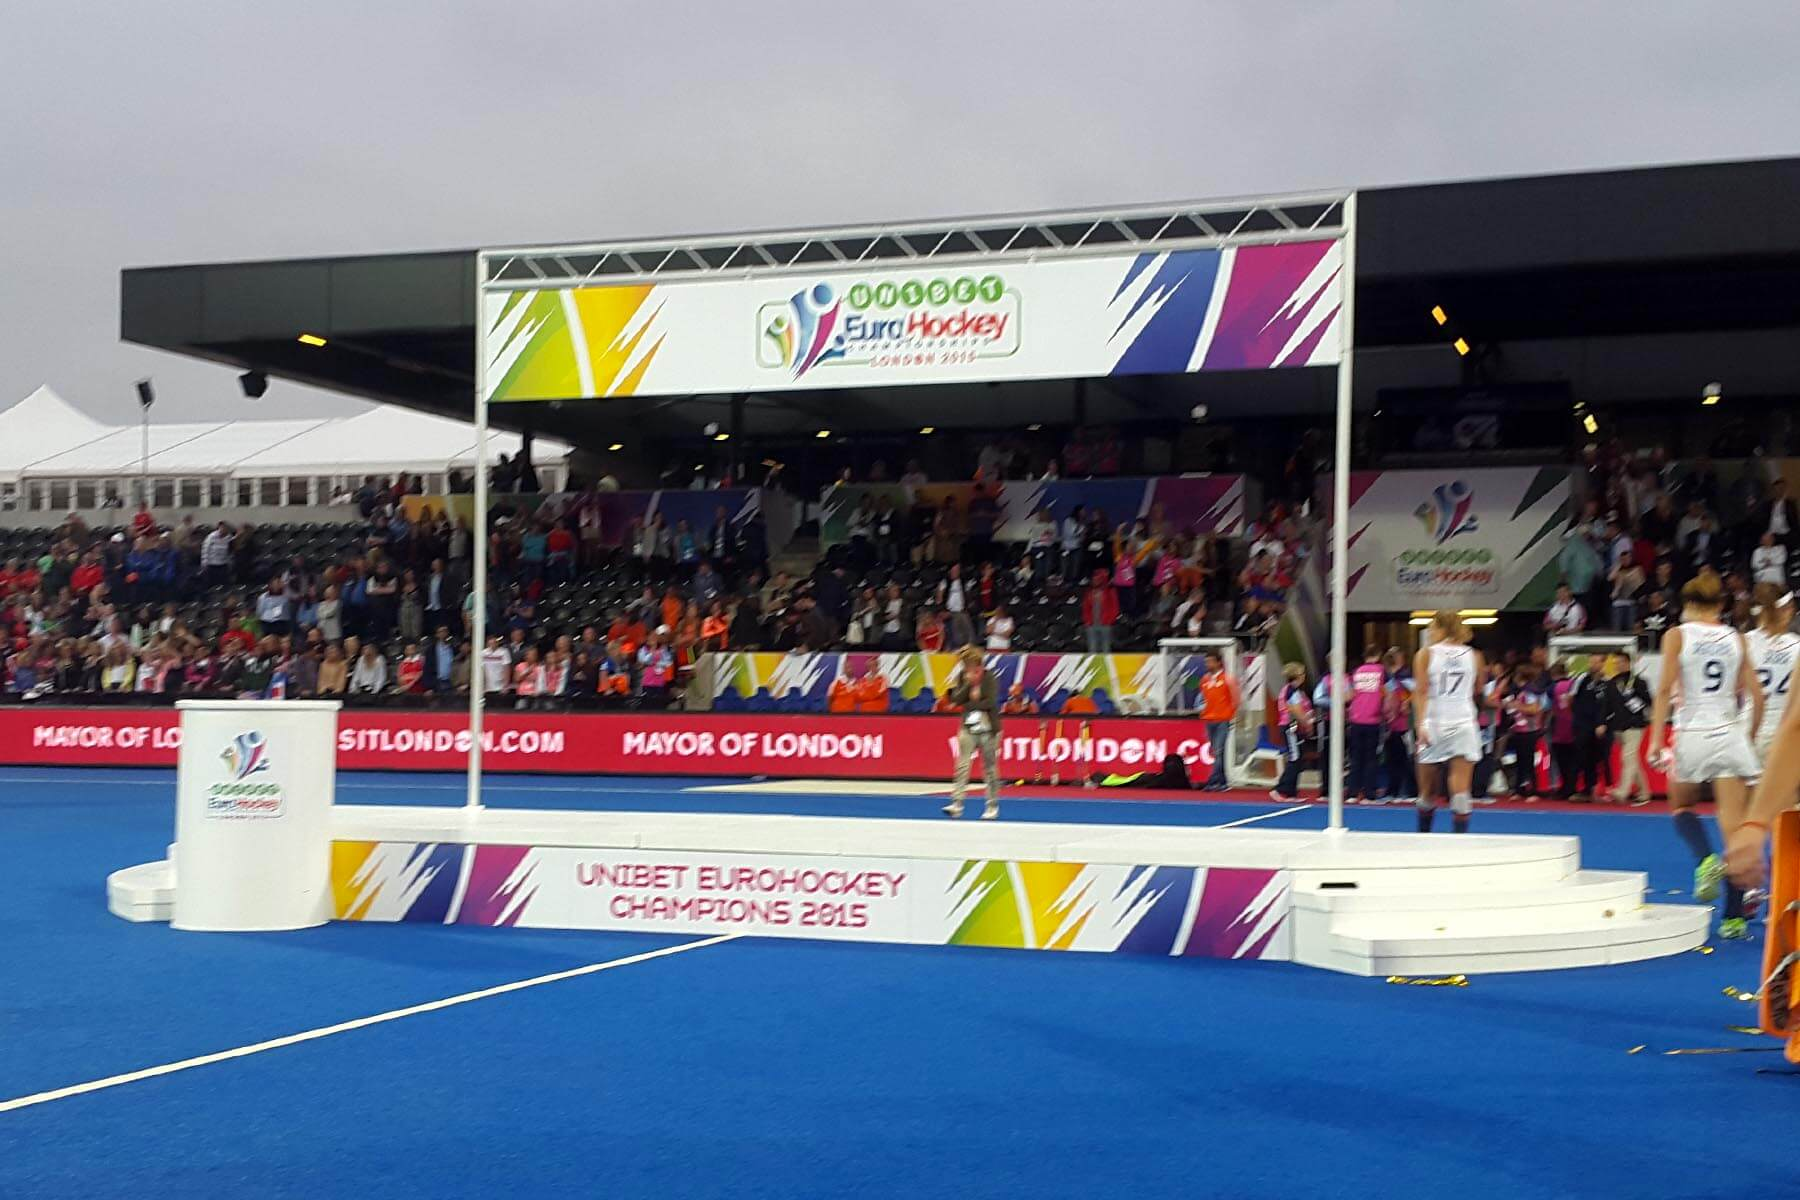 Large Sports Presentation Stage at Euro Hockey Championships London 2015